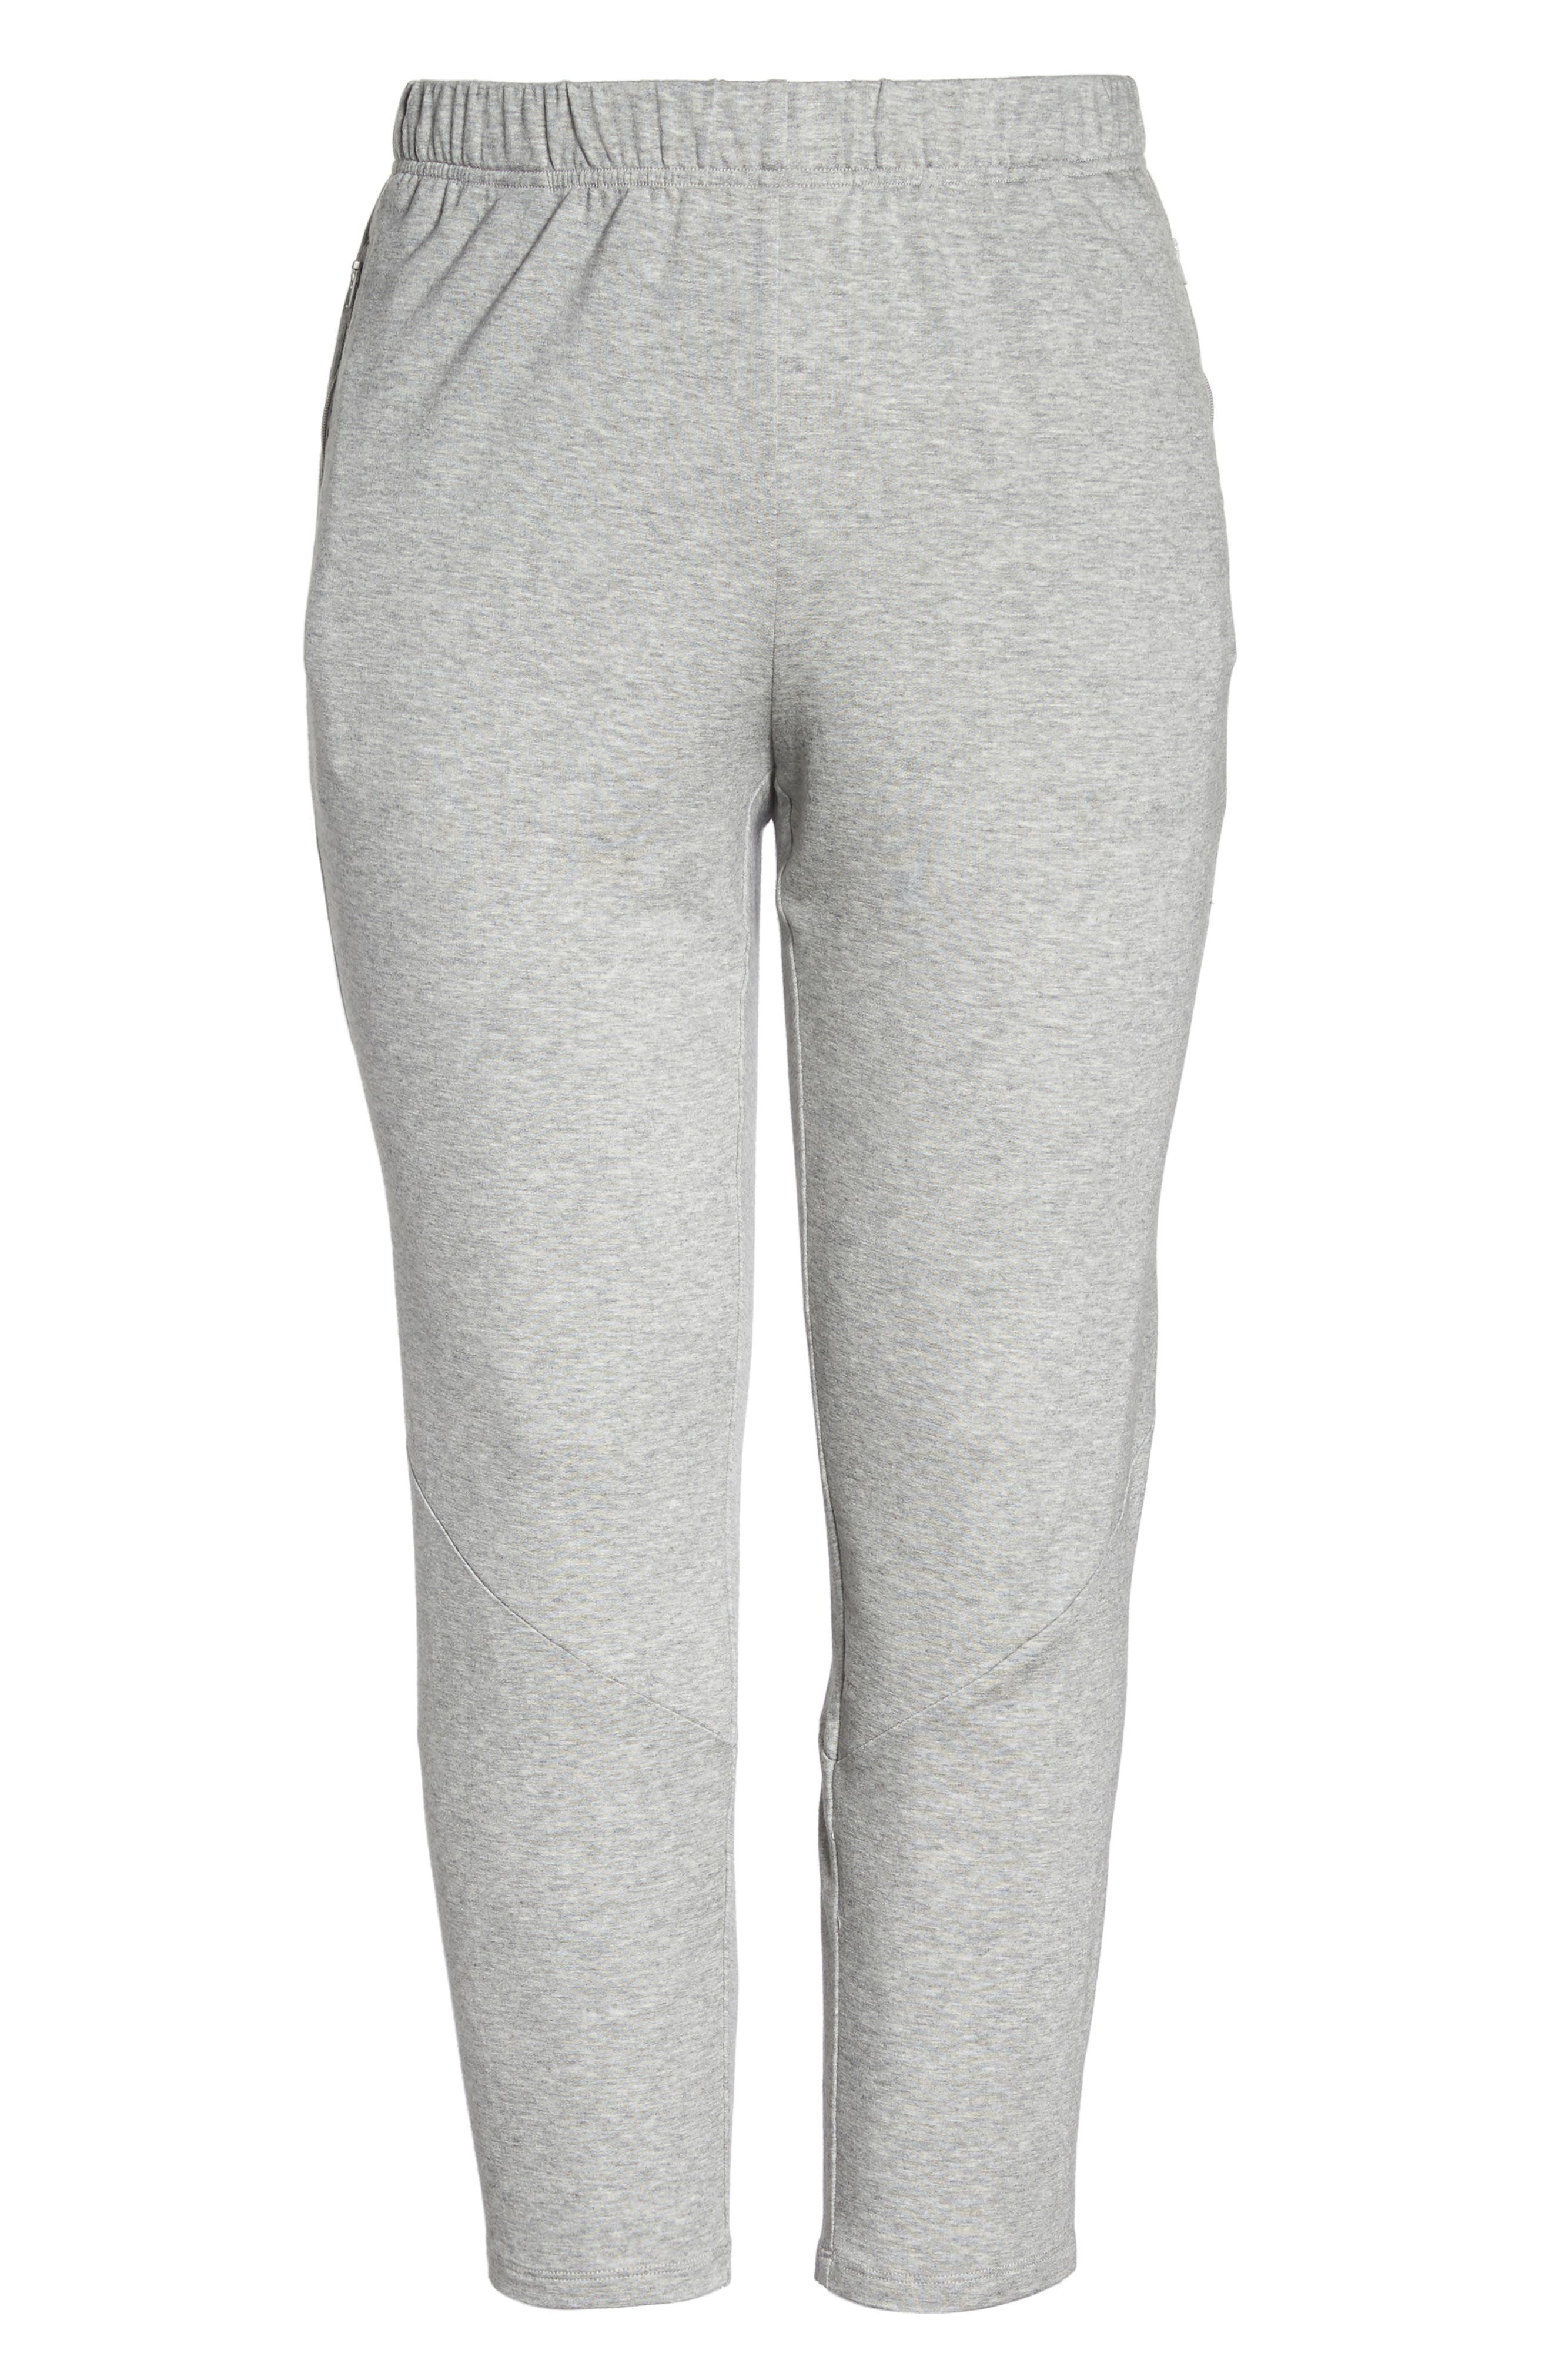 Slouchy Stretch Pants,                             Alternate thumbnail 6, color,                             Dark Pearl